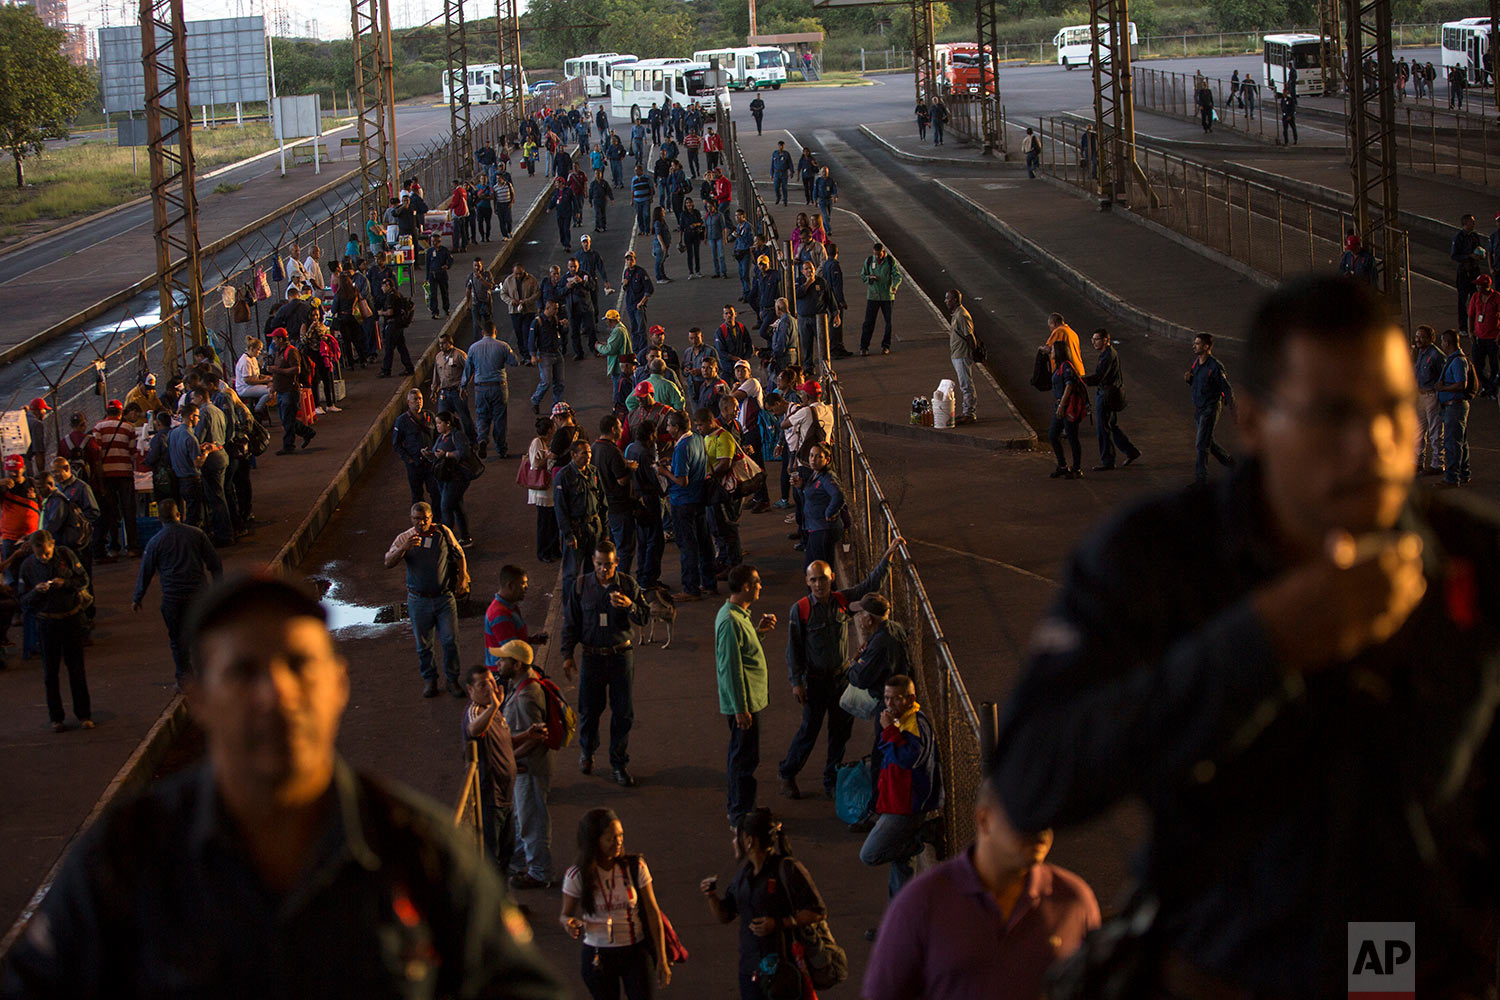 In this Nov. 7, 2017 photo, Sidor workers arrive for morning shift, in Ciudad Guayana, Bolivar state, Venezuela. Workers at the state-run factories quietly complain that they once proudly filled the ranks of Venezuela's middle class, taking their families out to eat and going on vacations. (AP Photo/Rodrigo Abd)